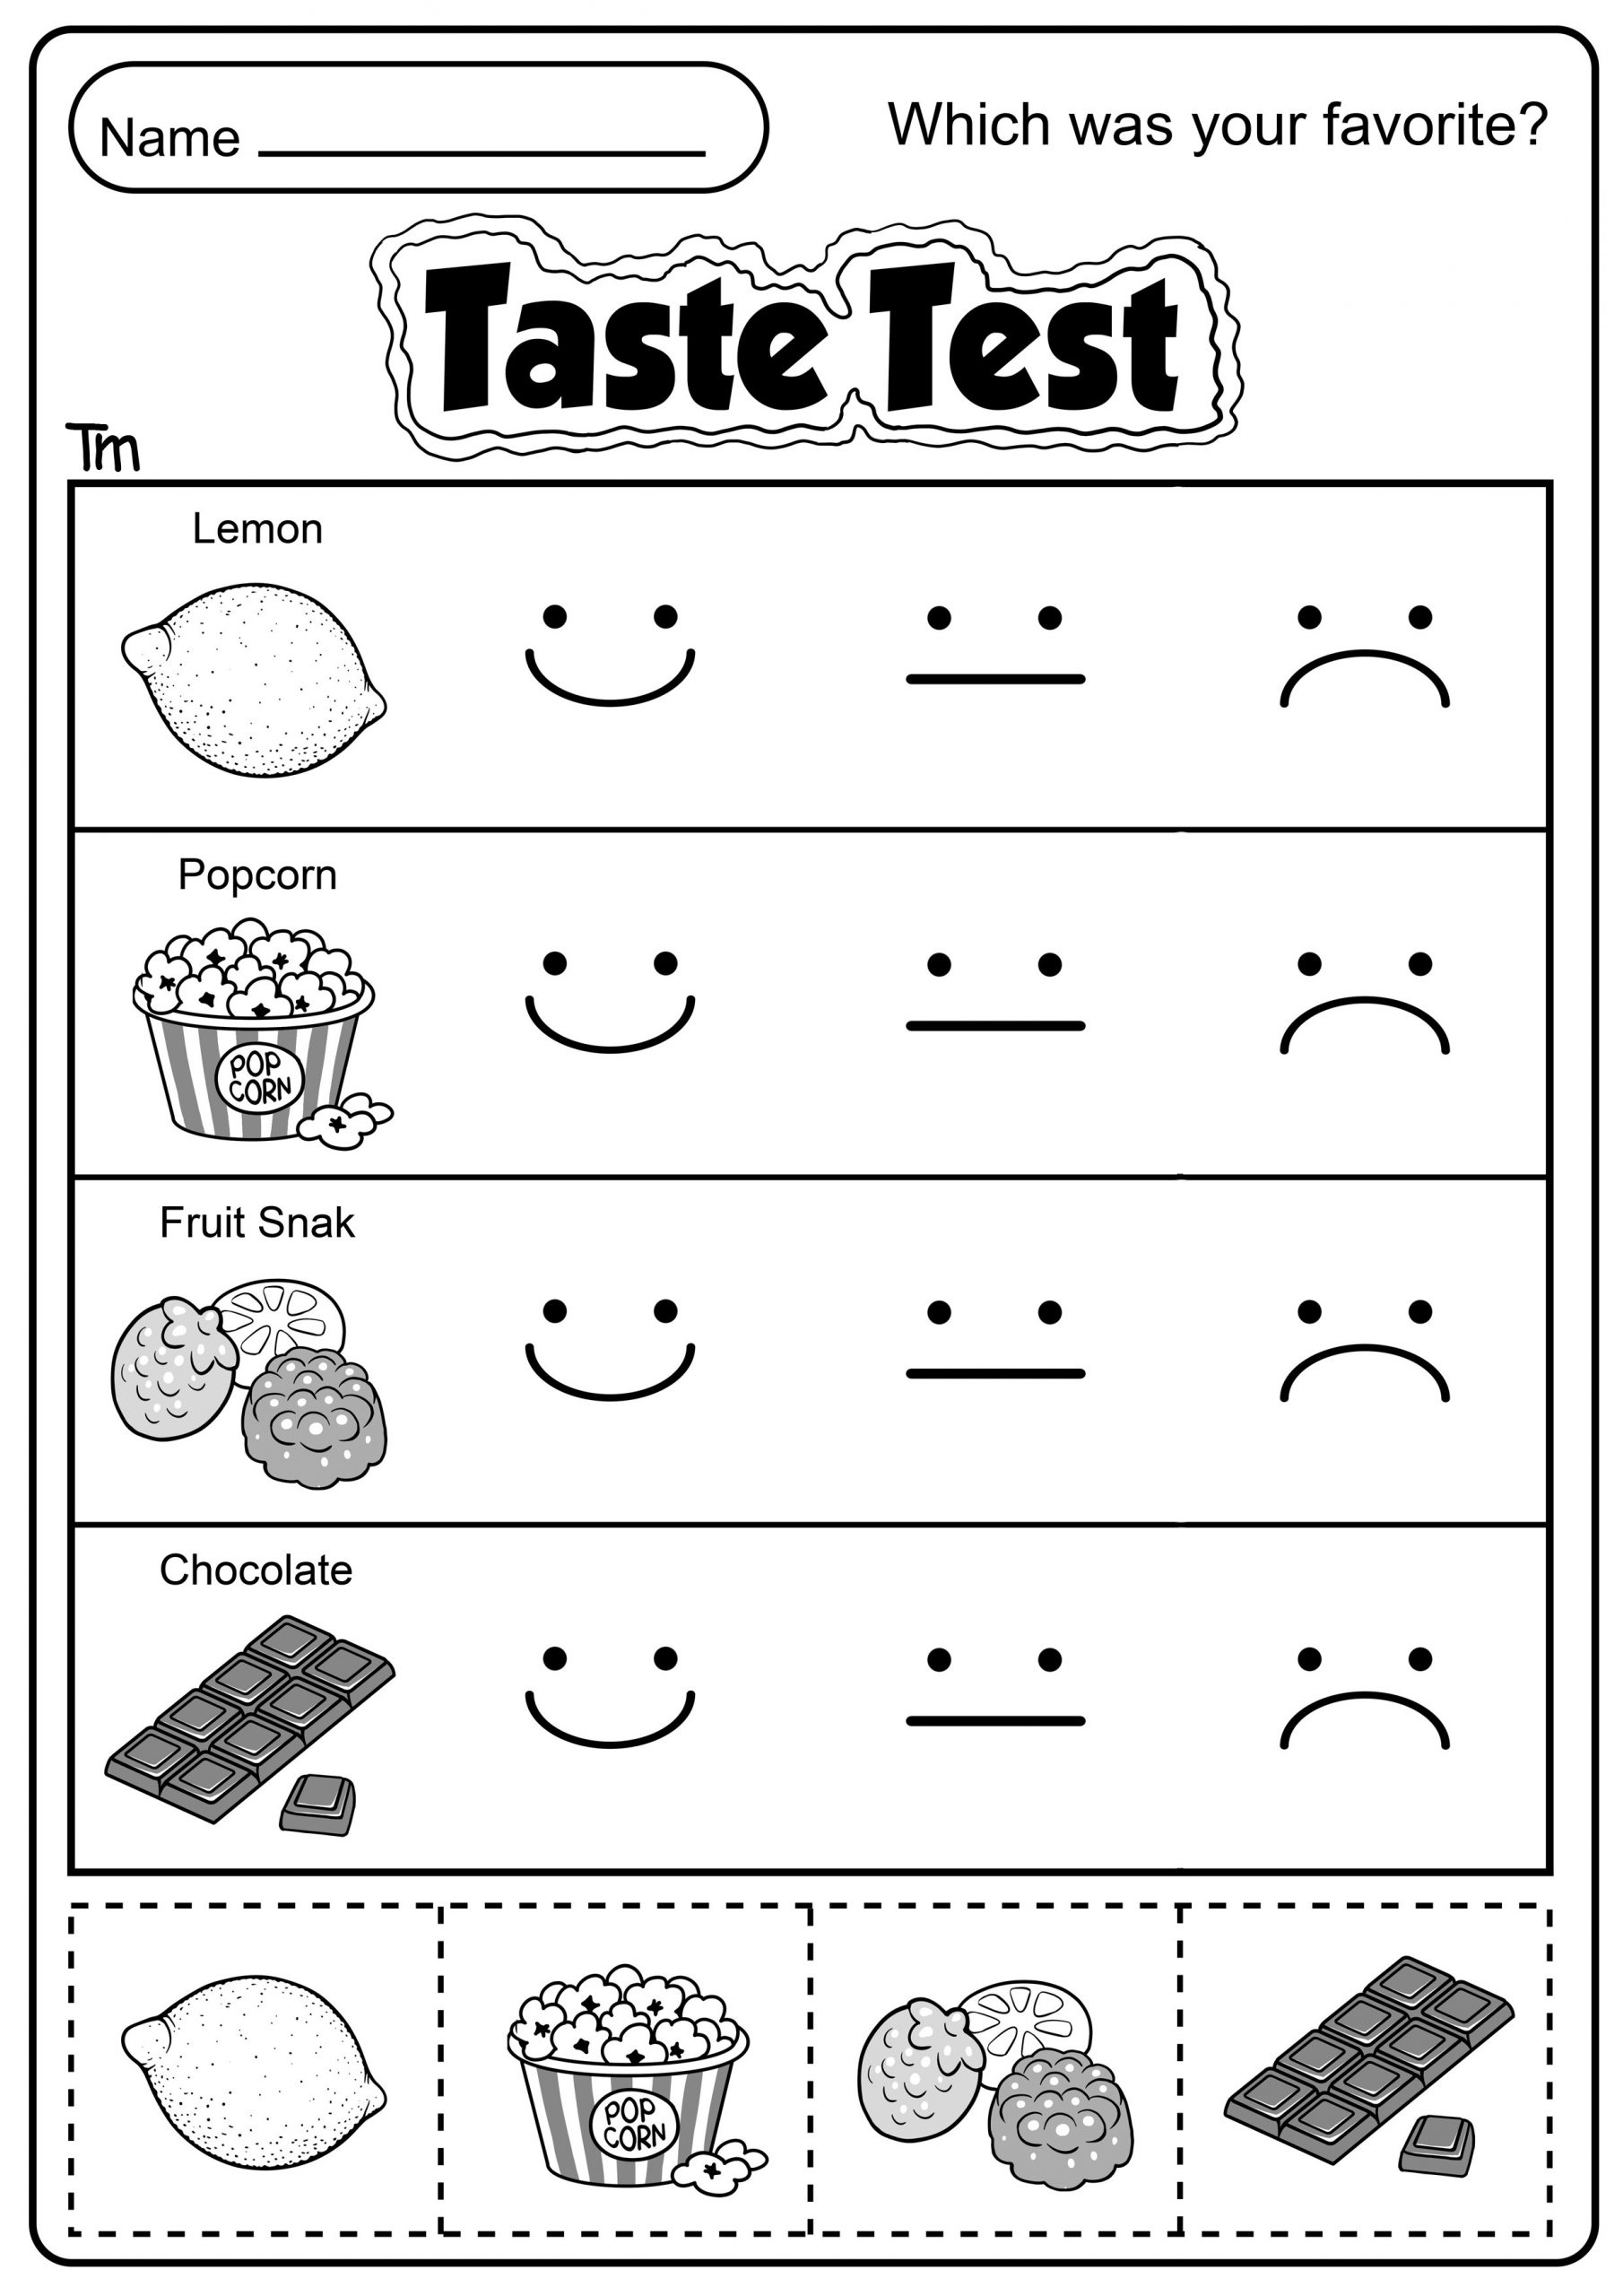 Free Printable Five Senses Worksheets the Five Senses Taste Test Teachersmag